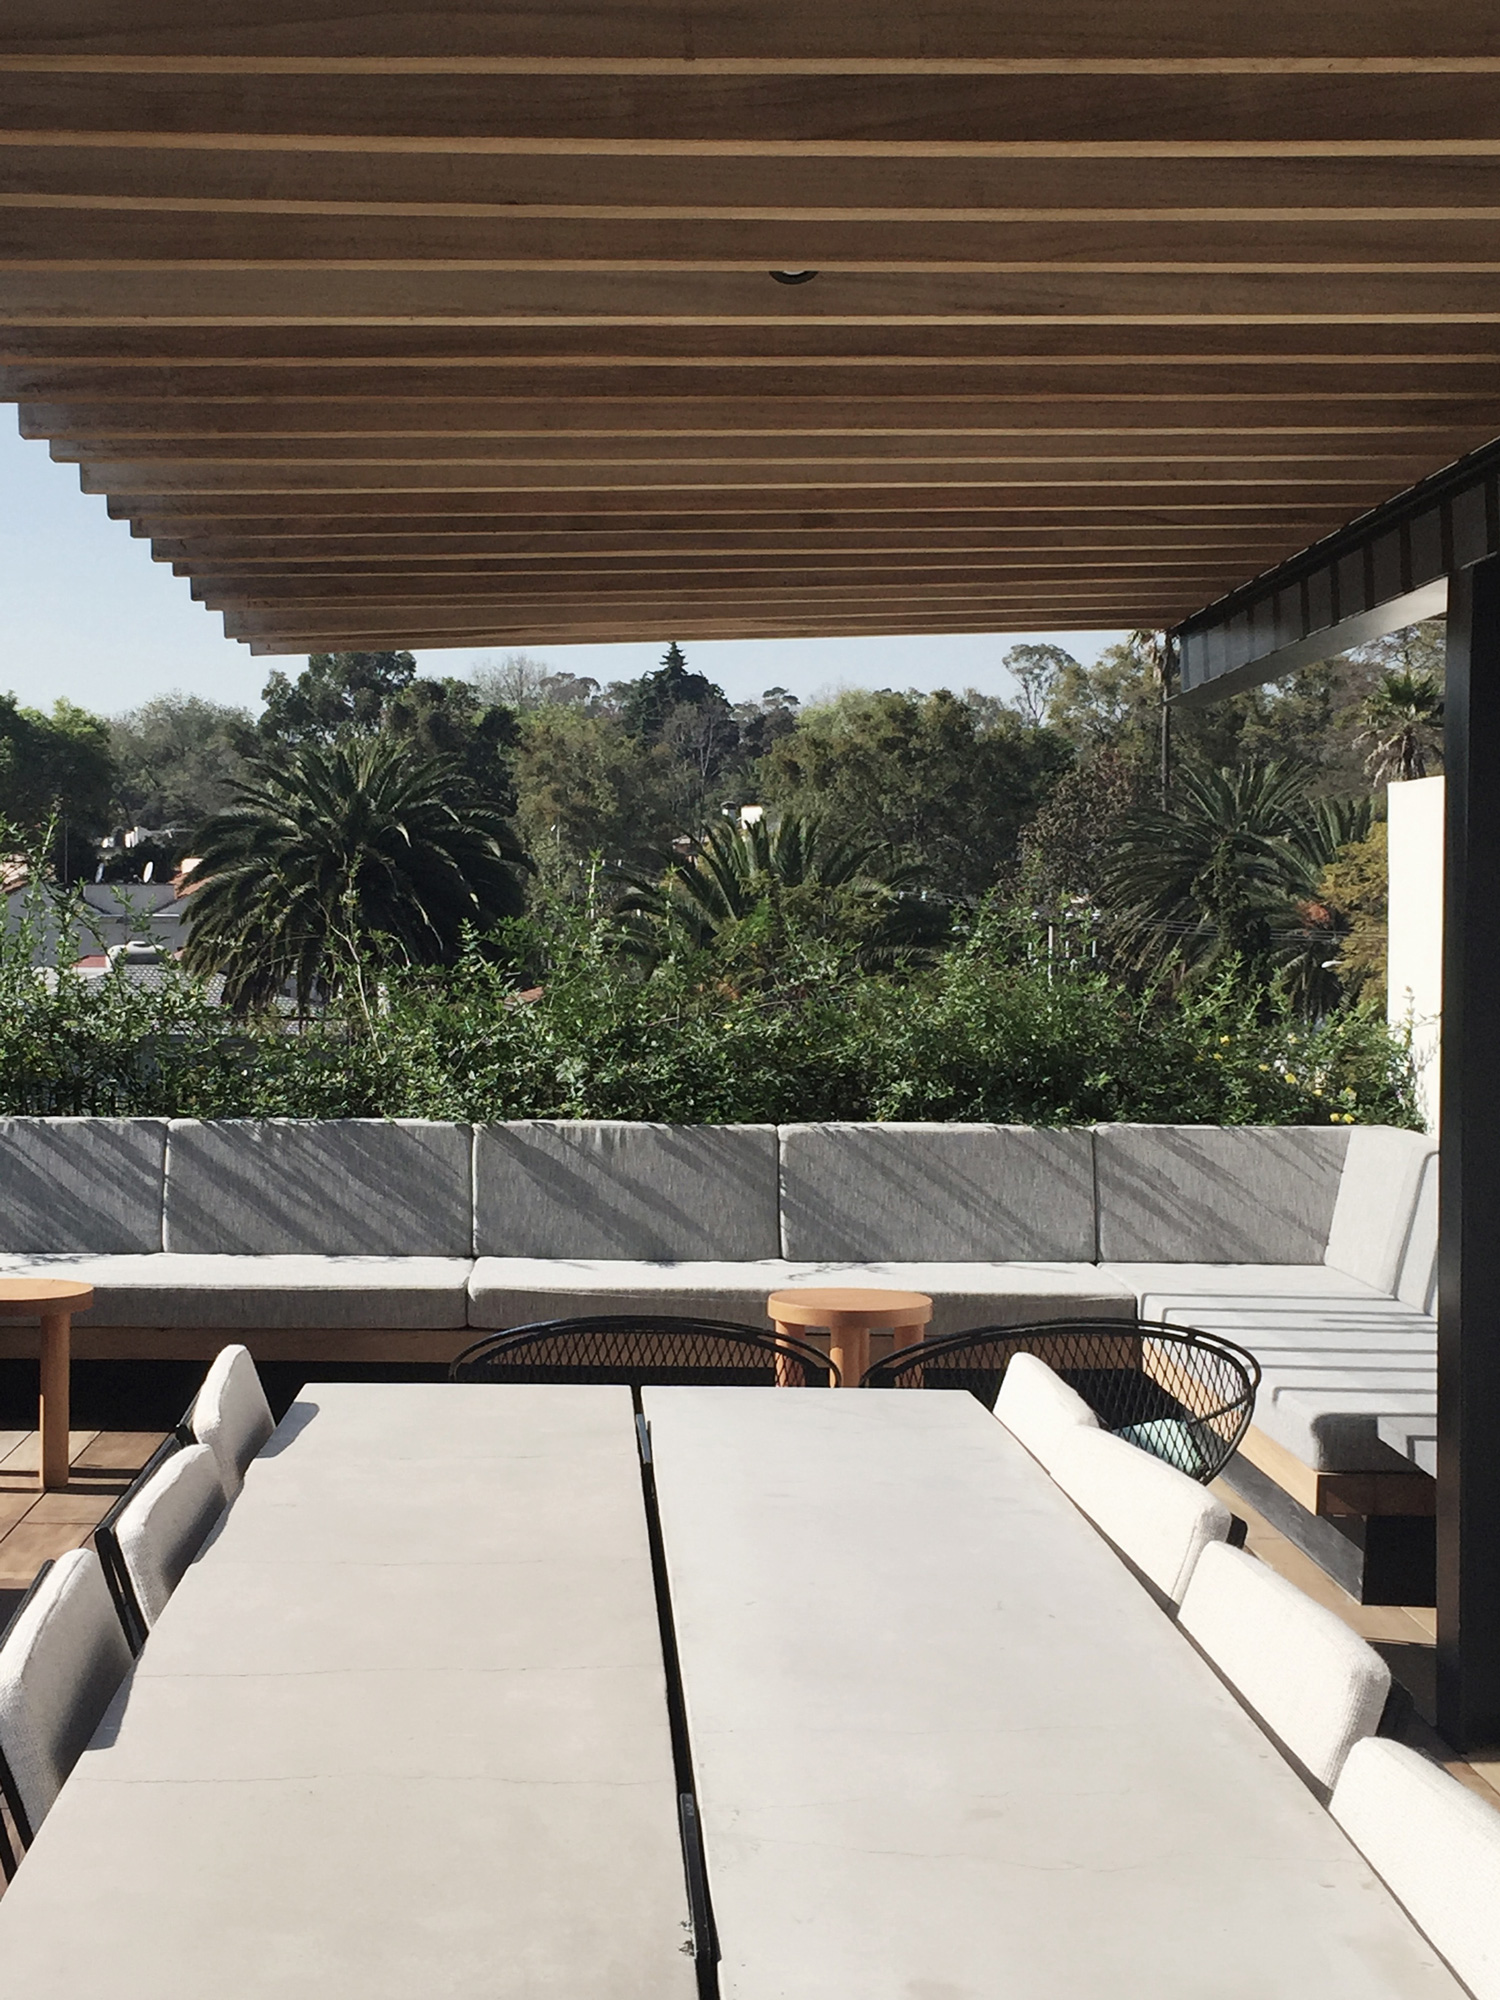 MM House in Mexico City by Nicolas Schuybroek Architects ...